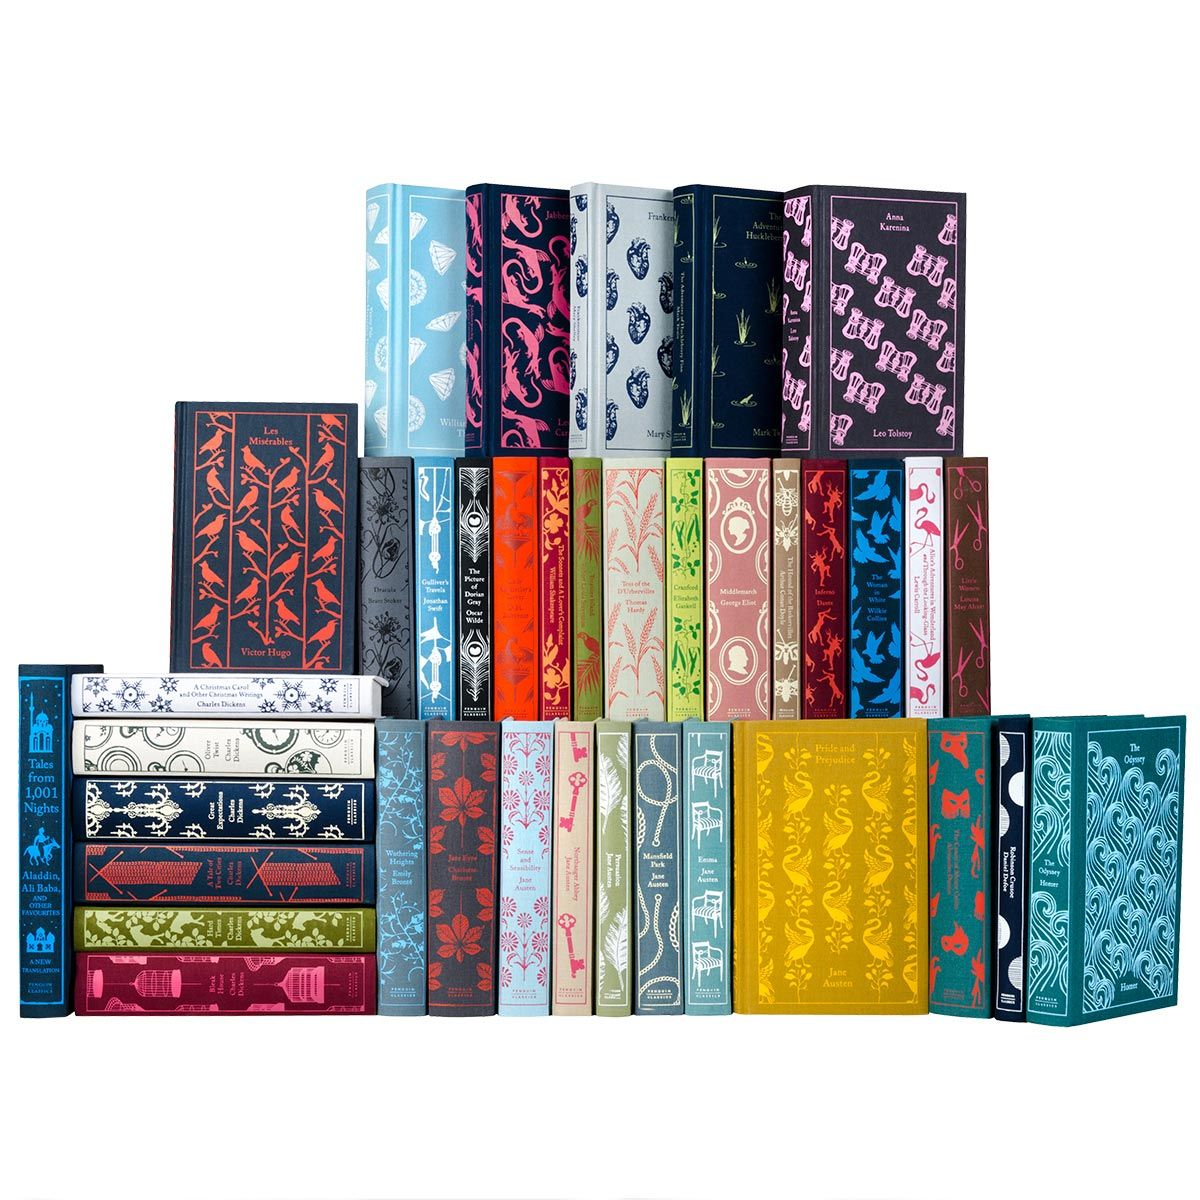 The Penguin Classics series, complete set. God, I would love these, especially if I had the right place to display them. In fact, I love everything on this site, but they're so pricey!!